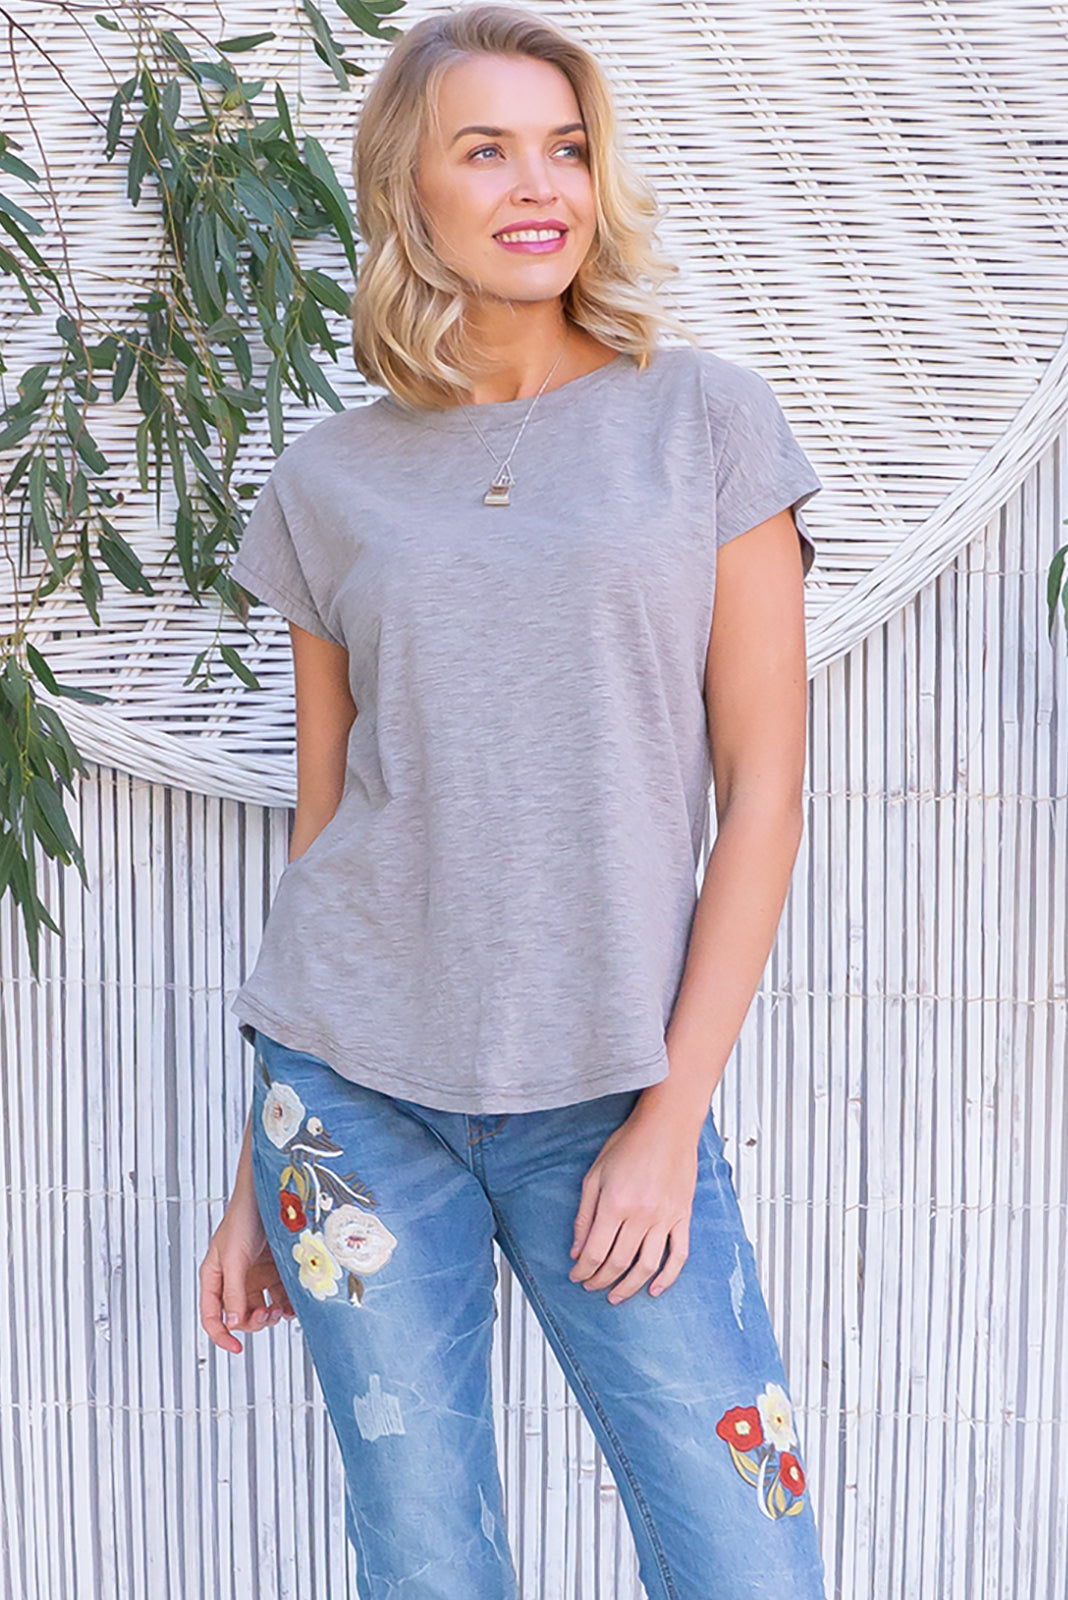 Phoenix Flint short sleeve tshirt has a relaxed fit and is made of soft cotton polyester fabric in a warm pale grey colour.